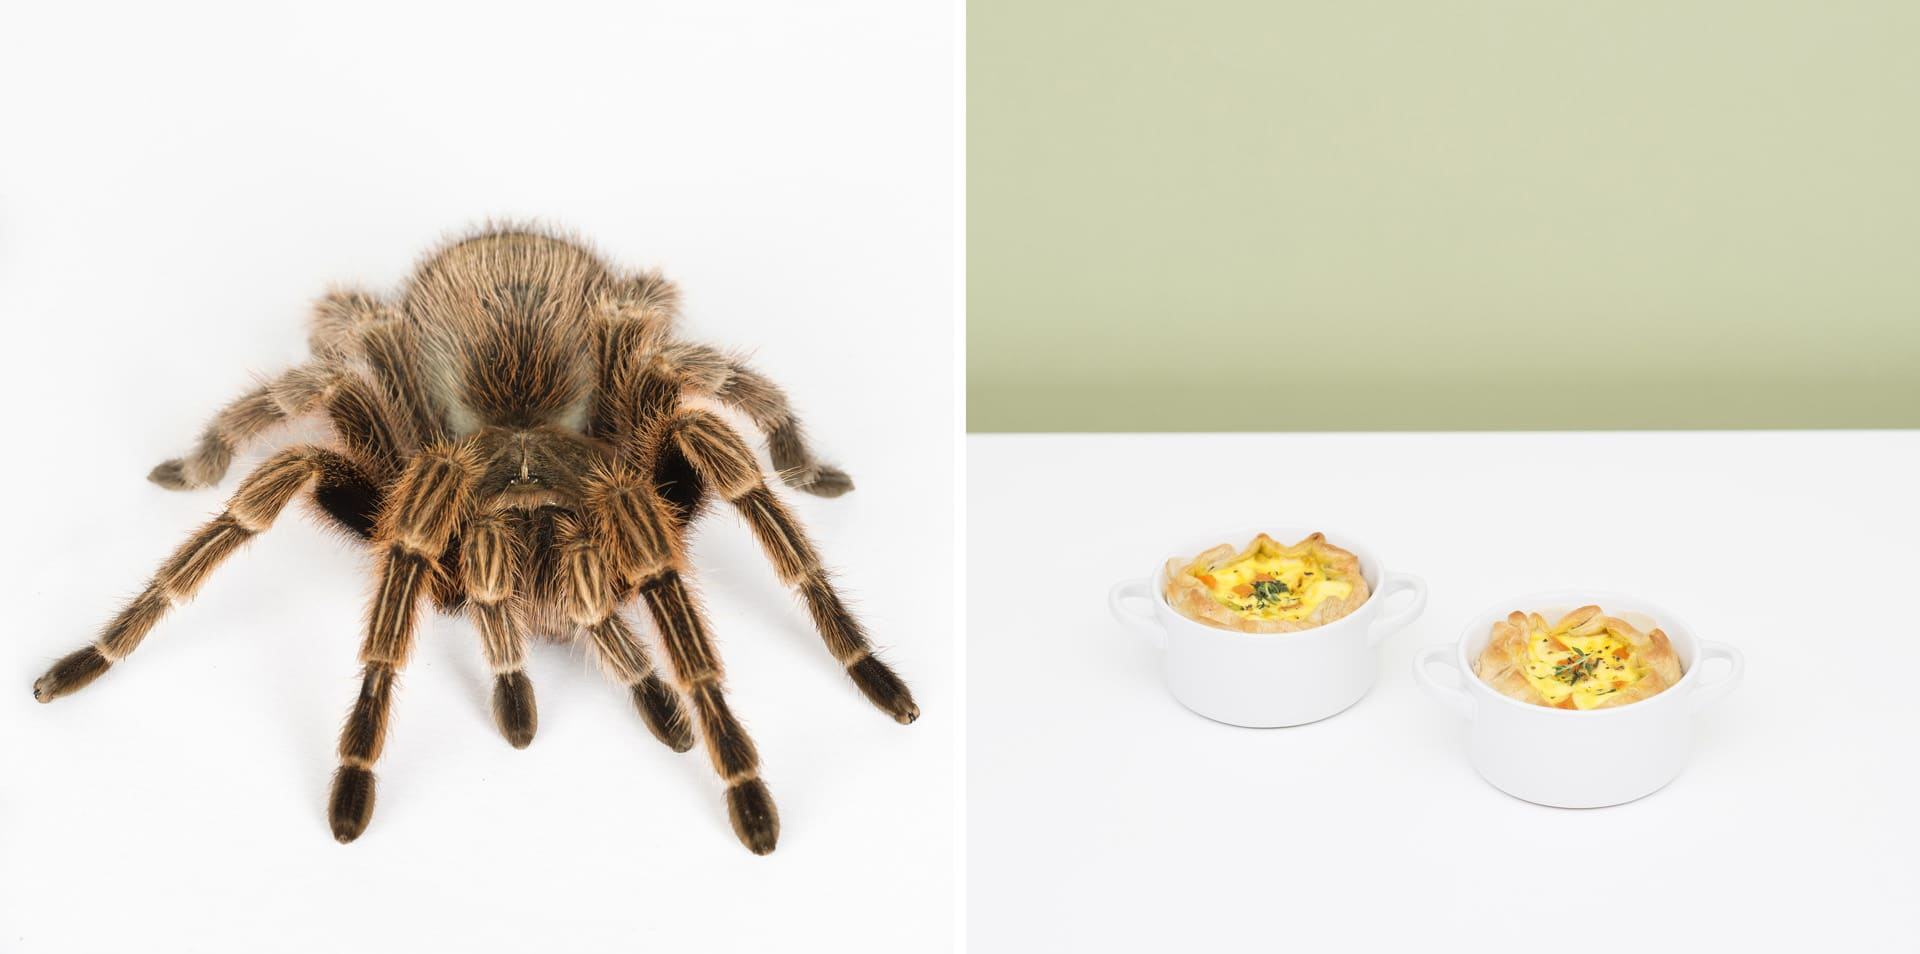 Baked vegetable cupcakes with dried tarantula